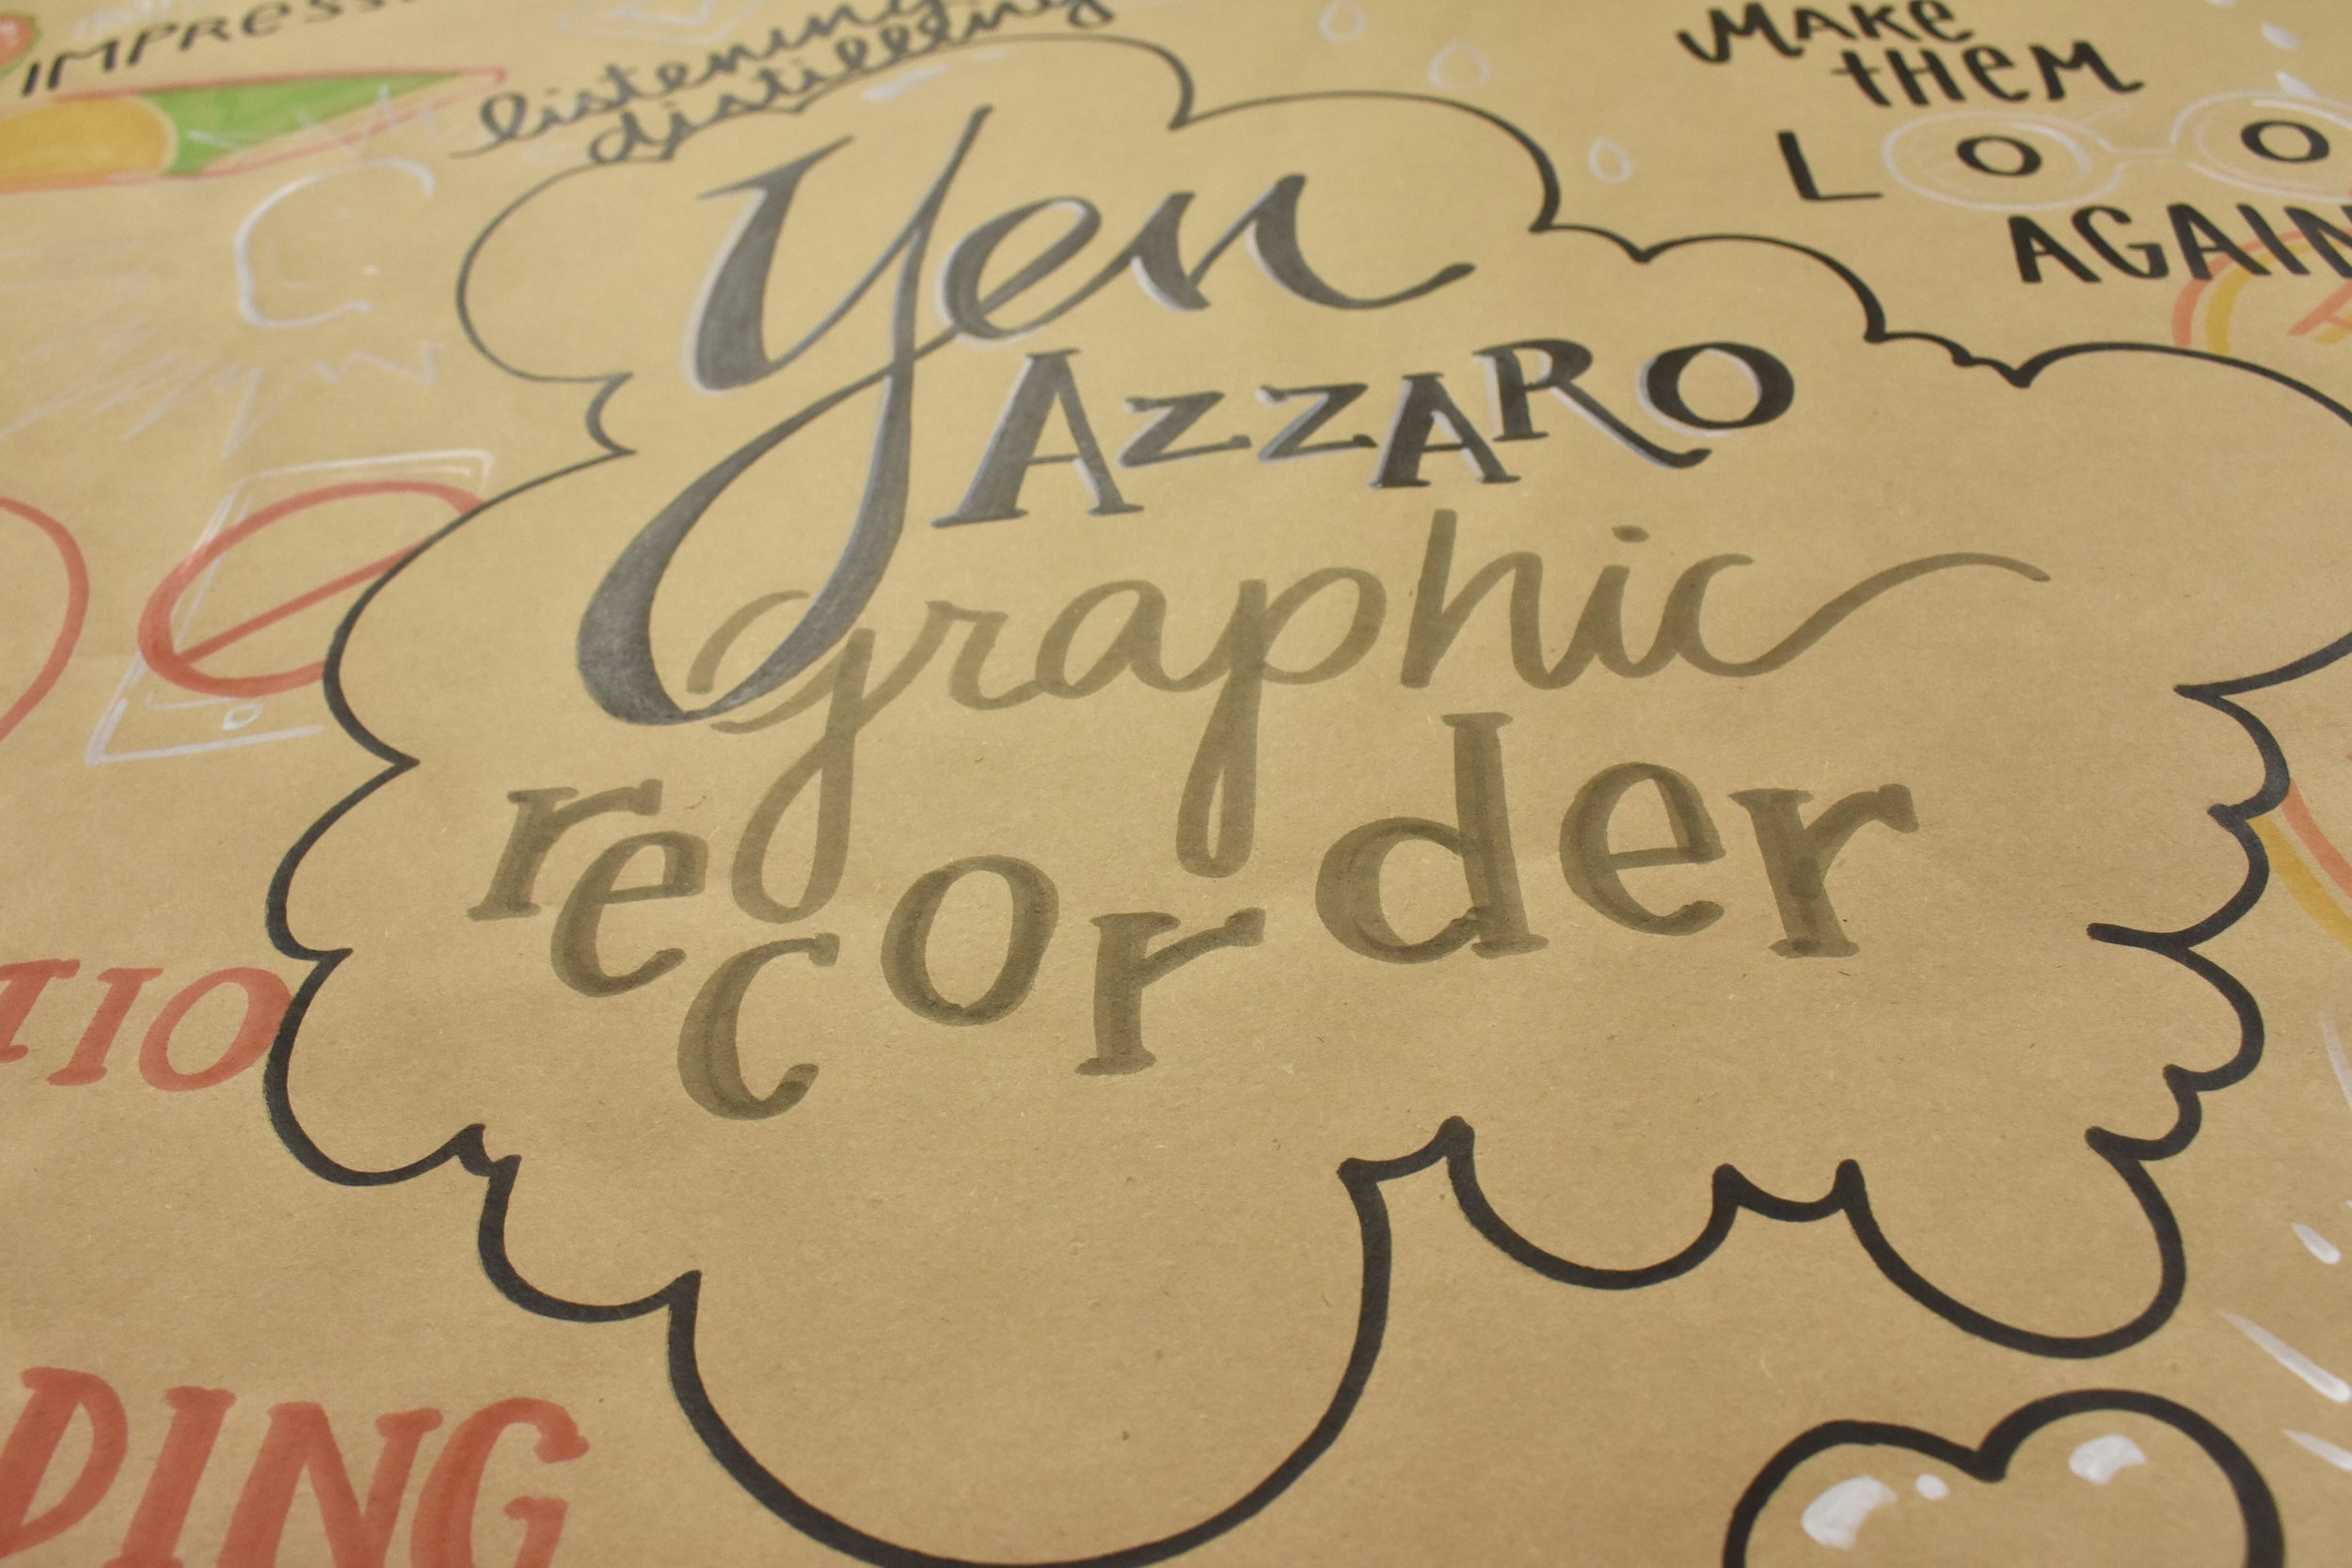 Detroit graphic recorder Yen Azzaro